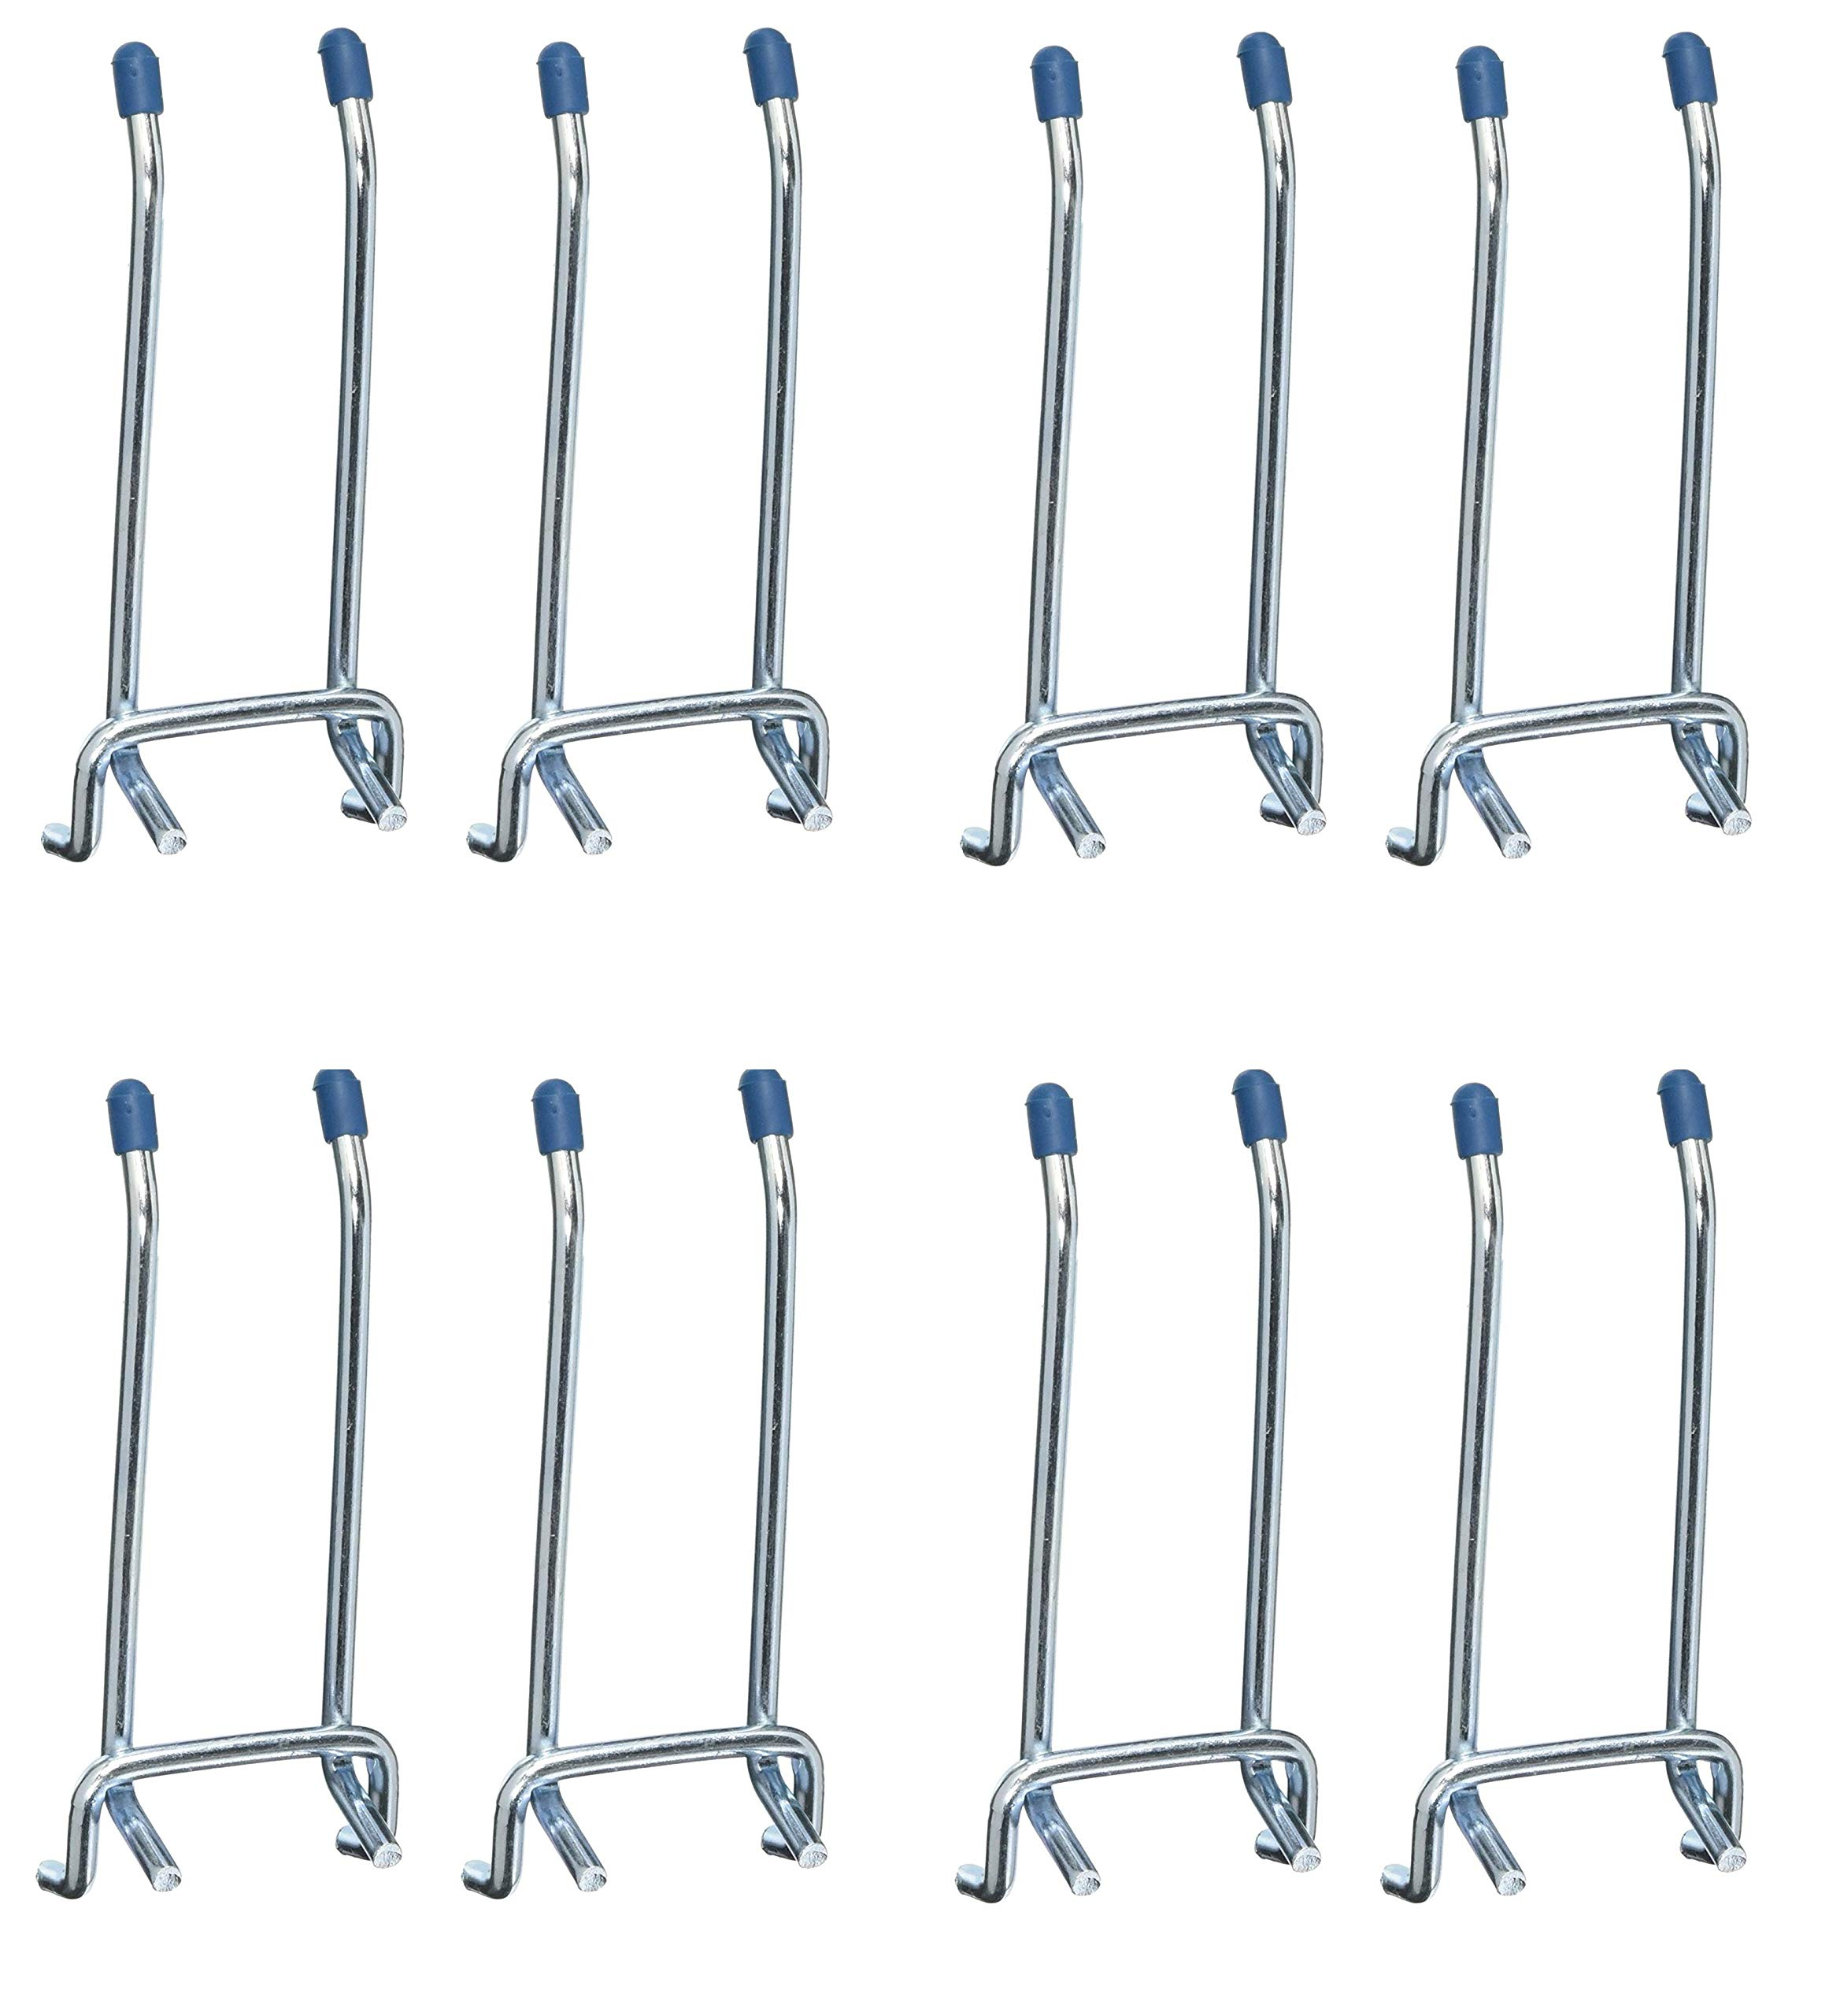 CRAWFORD PROD DIV OF JARDEN SAFETY 14444 Double Arm Peg Hook, 4-Inch, Sold as 4 Pack, 8 Hooks Total